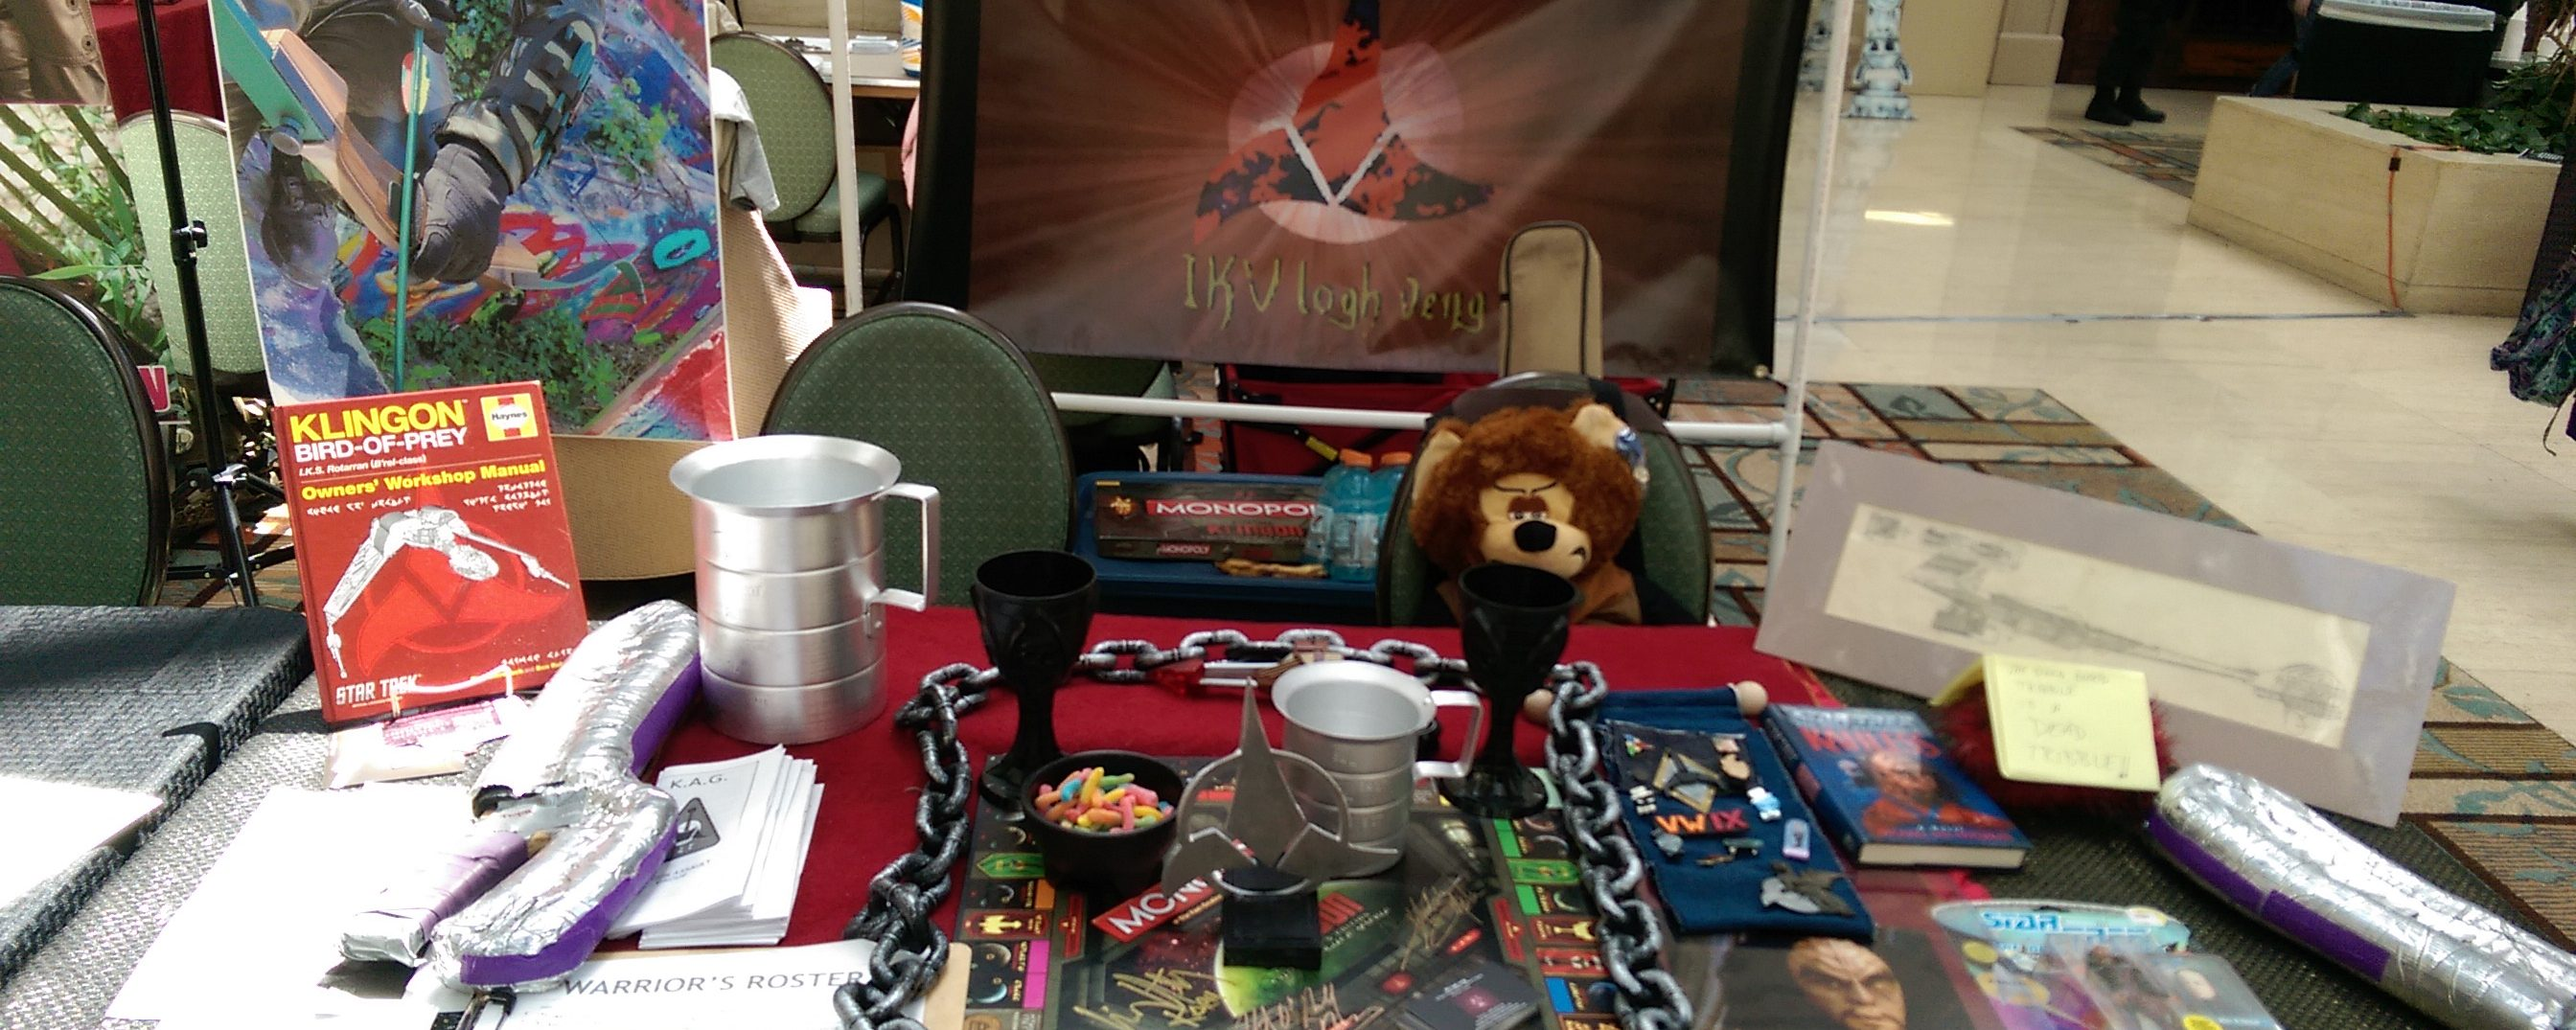 AER: The Houston Con – Summer 2014